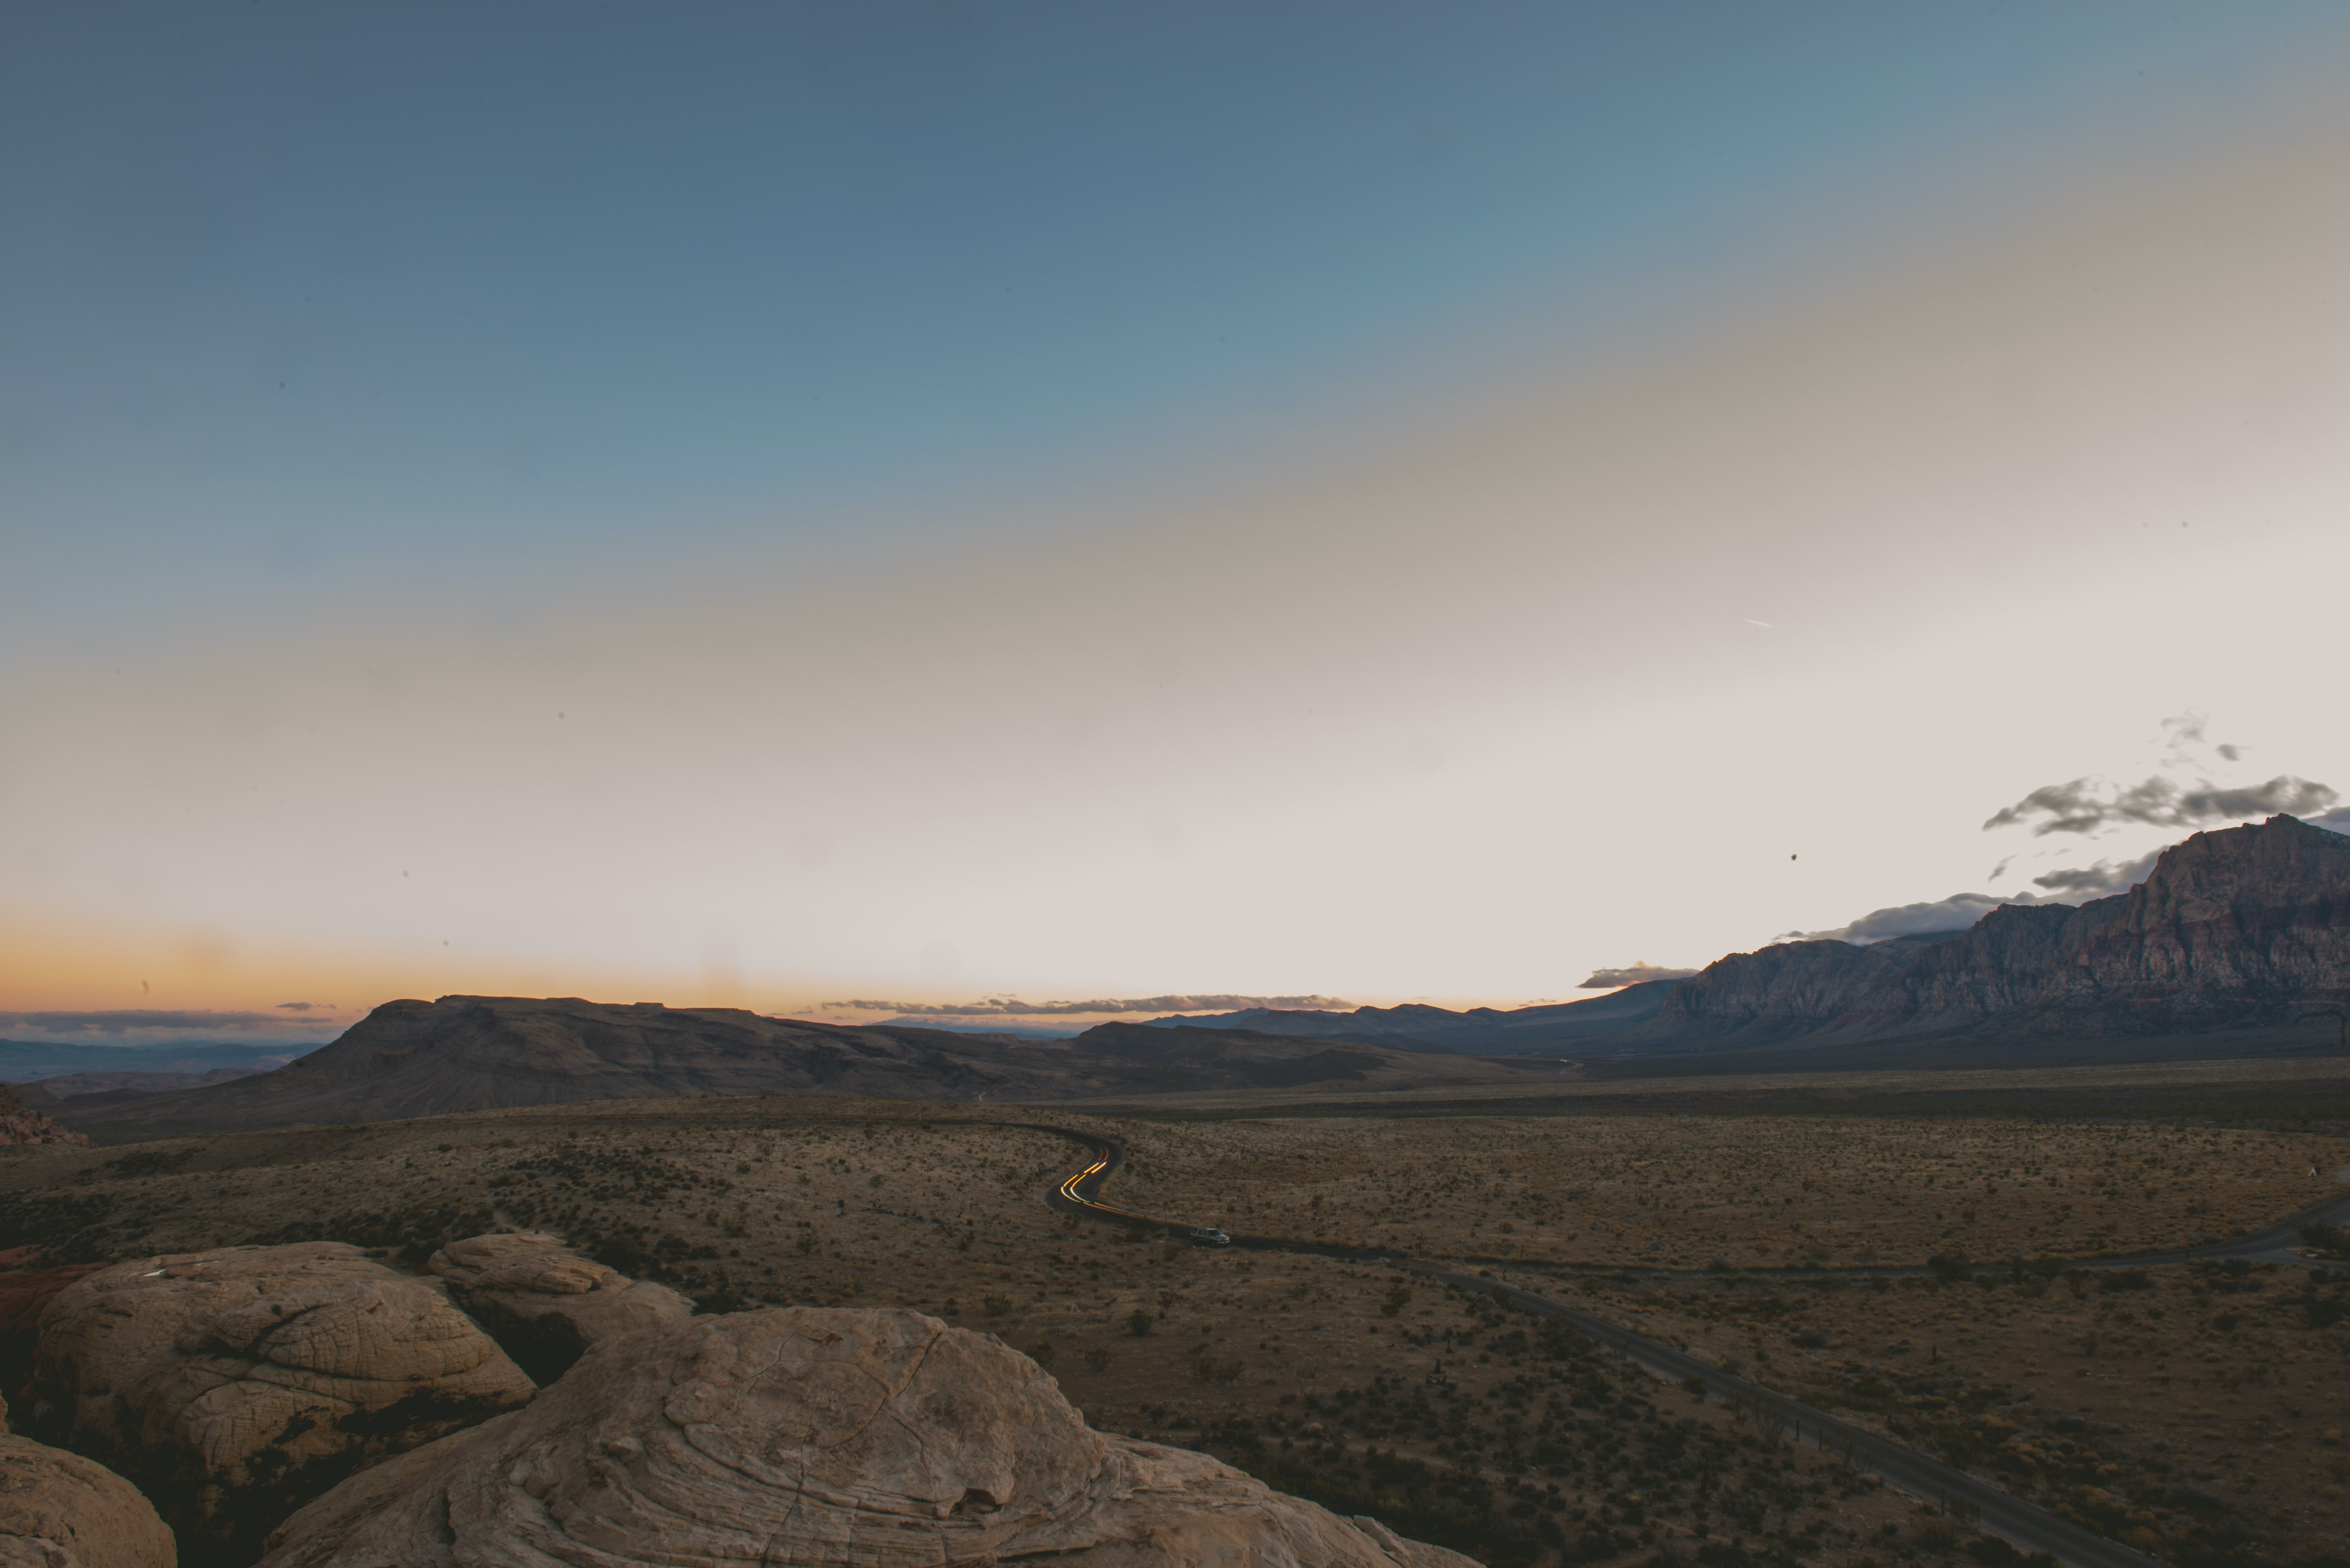 wide angle photography of land